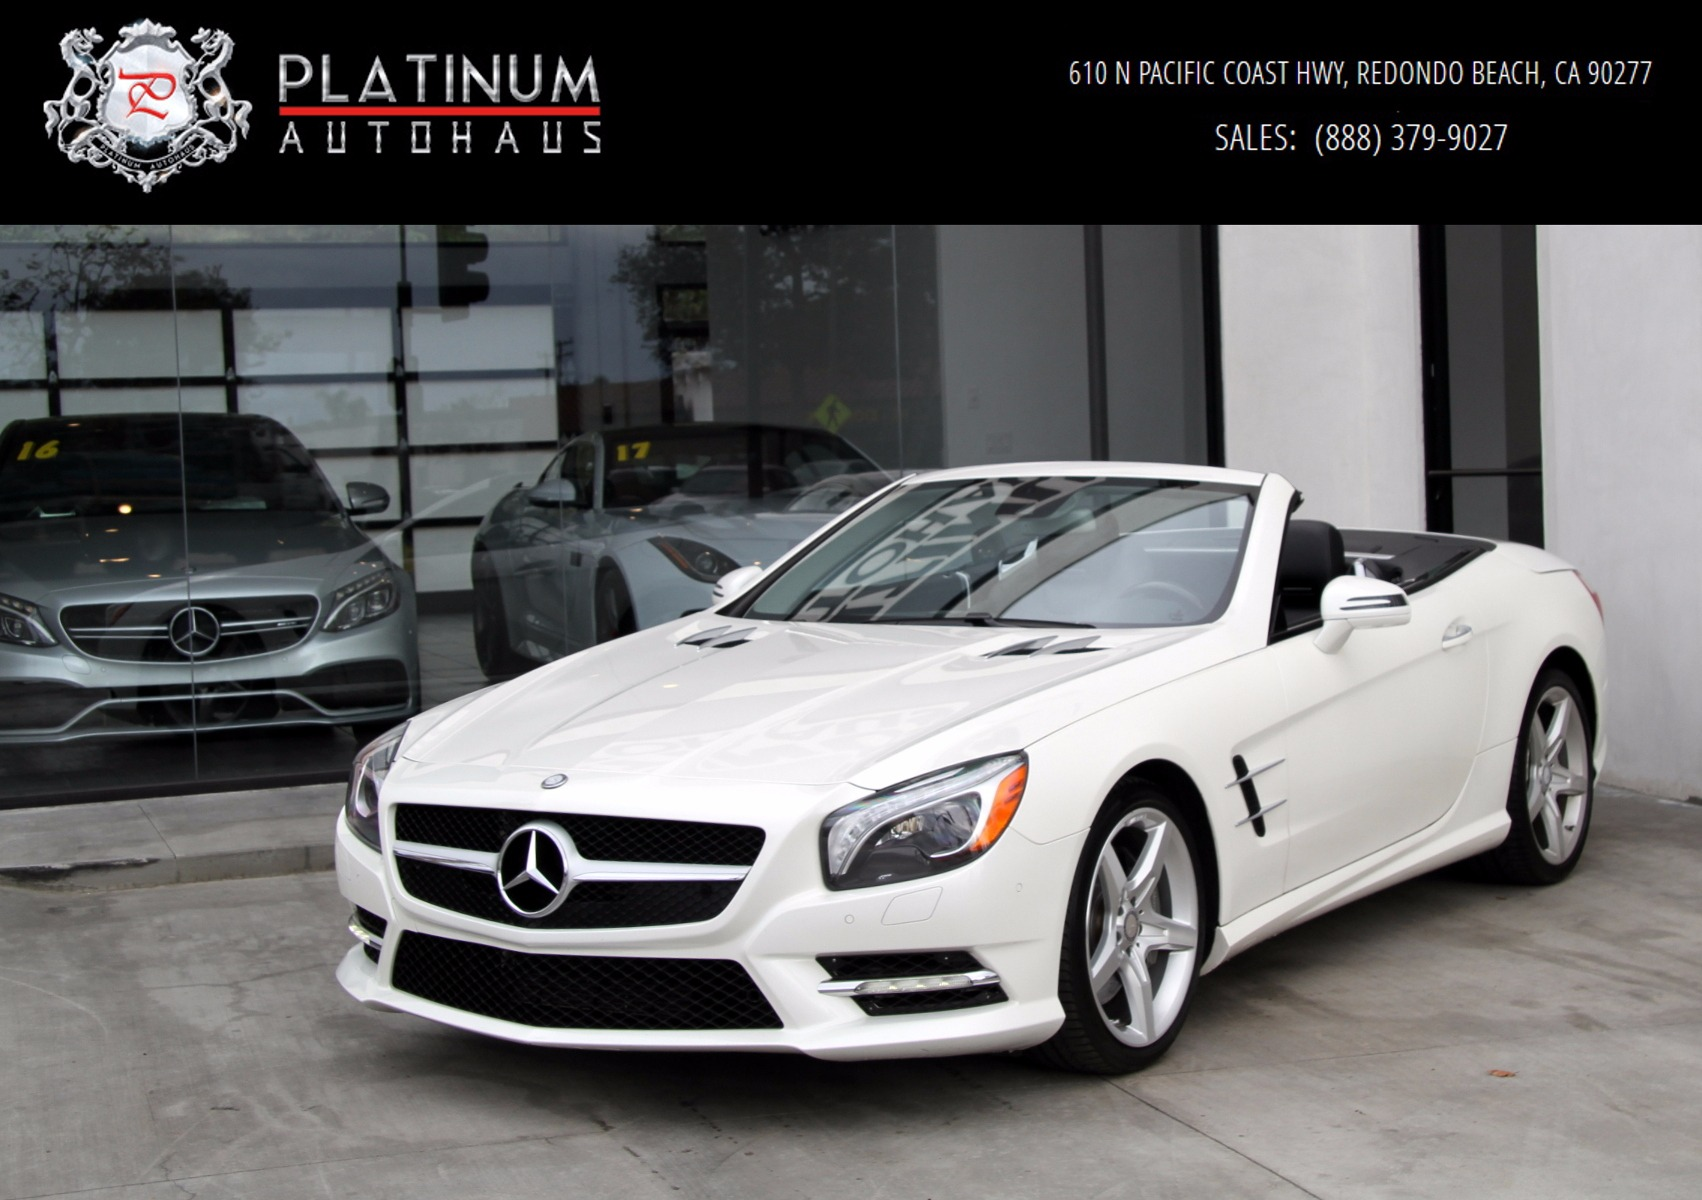 2013 mercedes benz sl550 amg sport package stock 6026 for sale near redondo beach ca ca. Black Bedroom Furniture Sets. Home Design Ideas